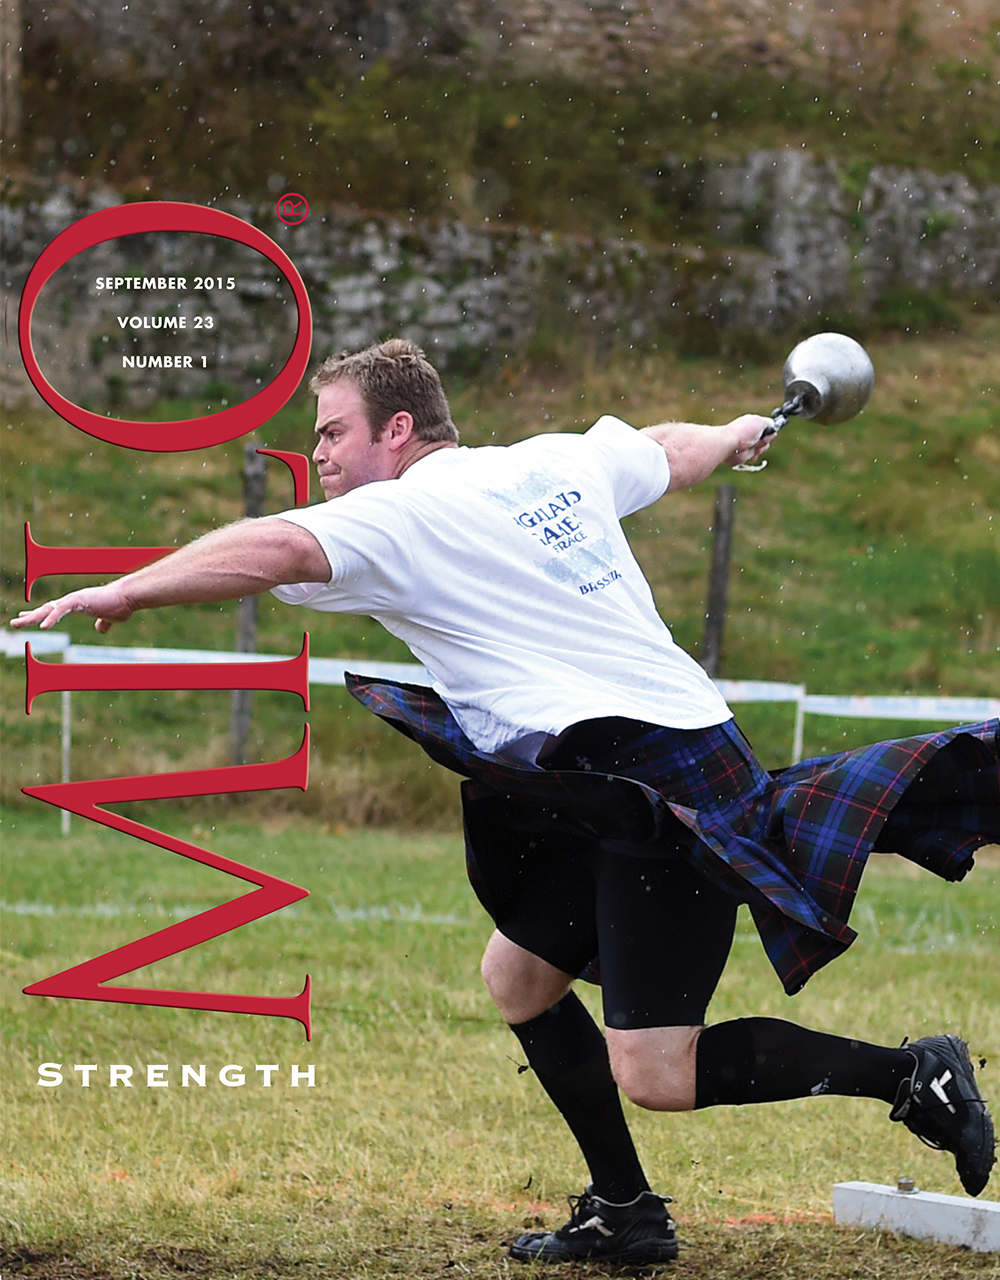 September 2015, Vol. 23, No. 2: Never mind the rain: classic Dan McKim, with a winning wind-up on the heavy weight for distance. McKim put himself in a deep hole by finishing in eighth place on the first event, the open stone, but by the end of the contest, he had fought his way back to the top, and then he laid all comers low on the weight for height, regaining the IHGF world champion's crown. Randall J. Strossen photo